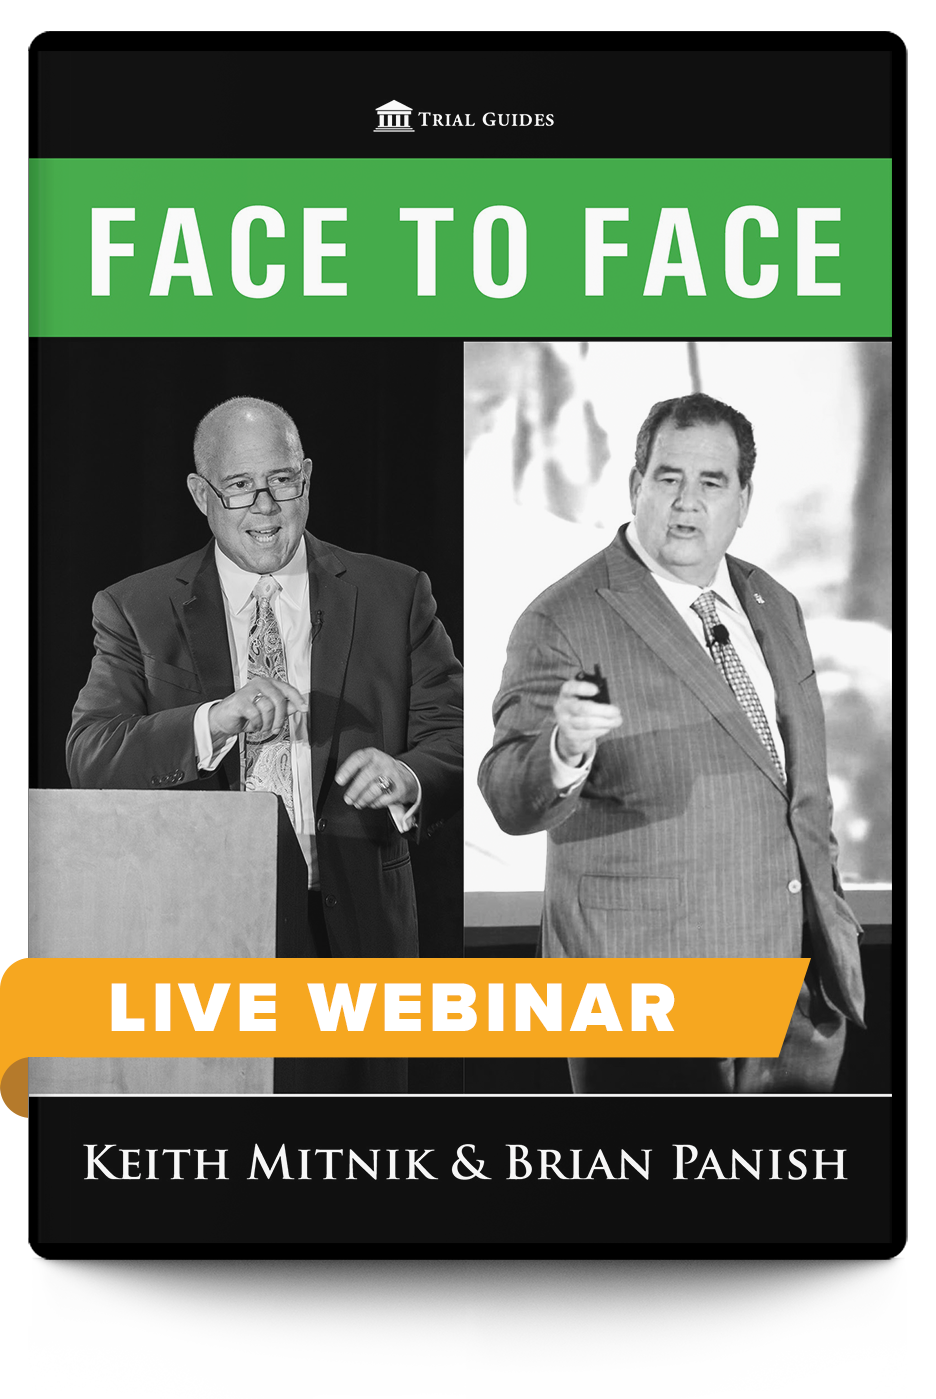 FACE to FACE: Mitnik & Panish - Live Webinar